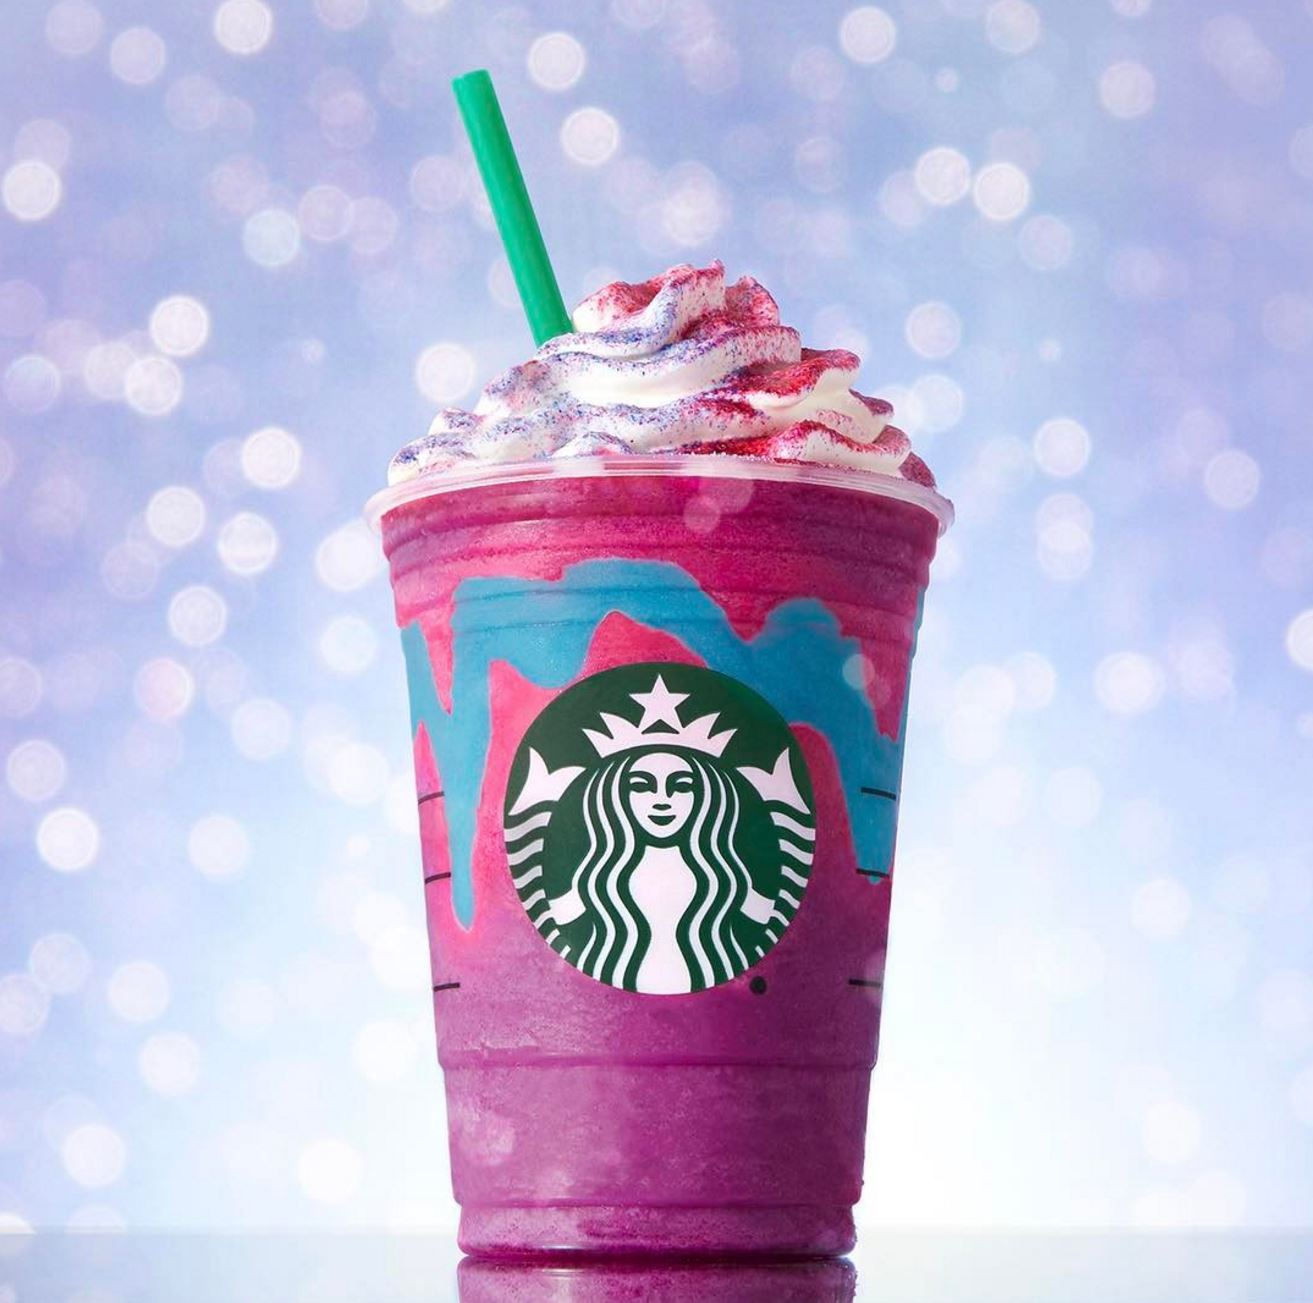 Starbucks Releases A Magical Unicorn Drink - Available Now For A Limited Time